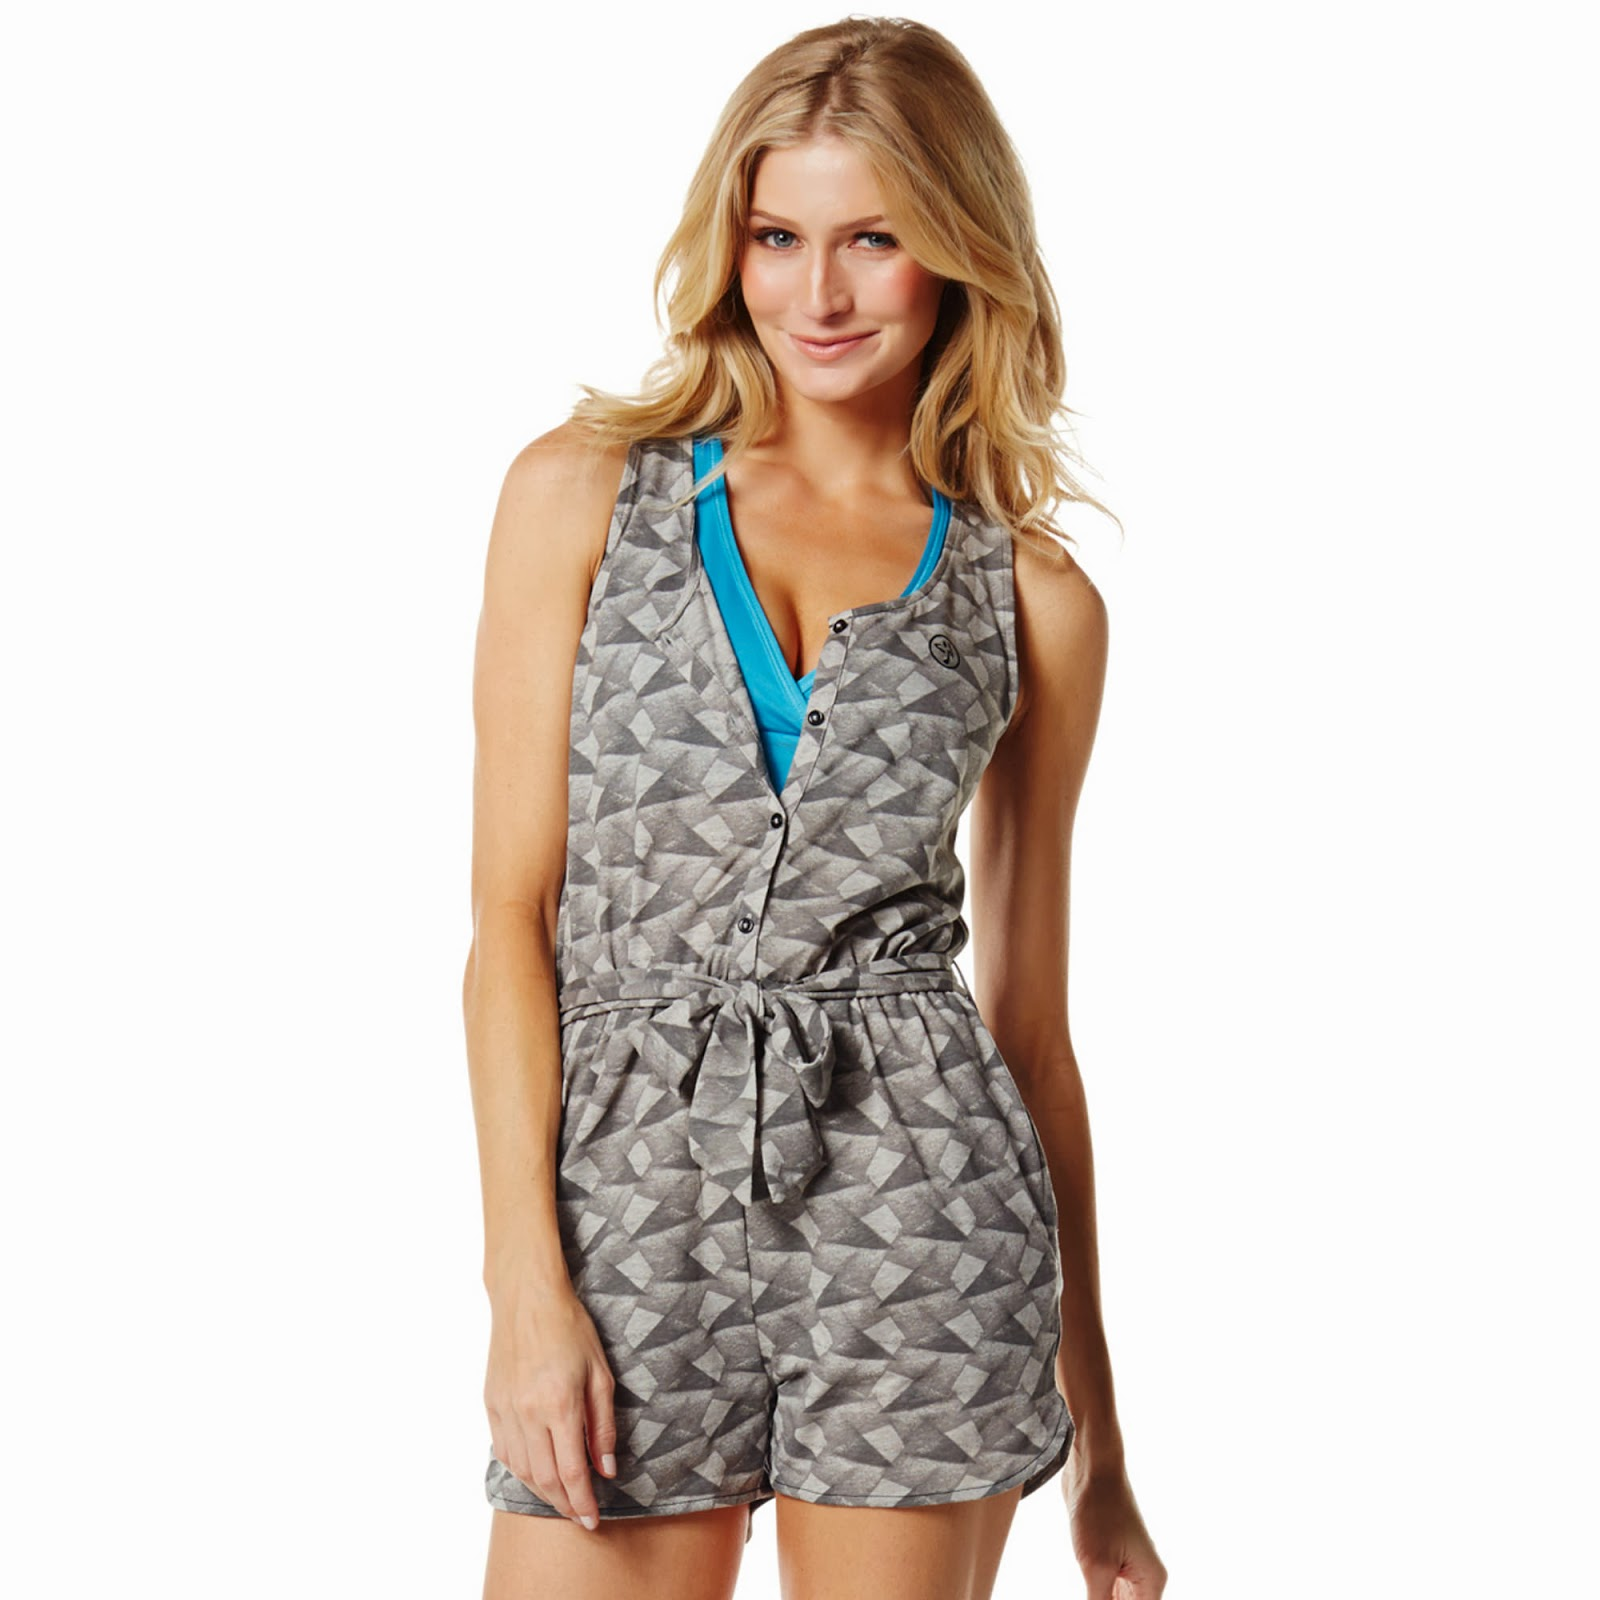 http://www.zumba.com/en-US/store/US/product/print-perfect-romper?color=Thunderin+Gray